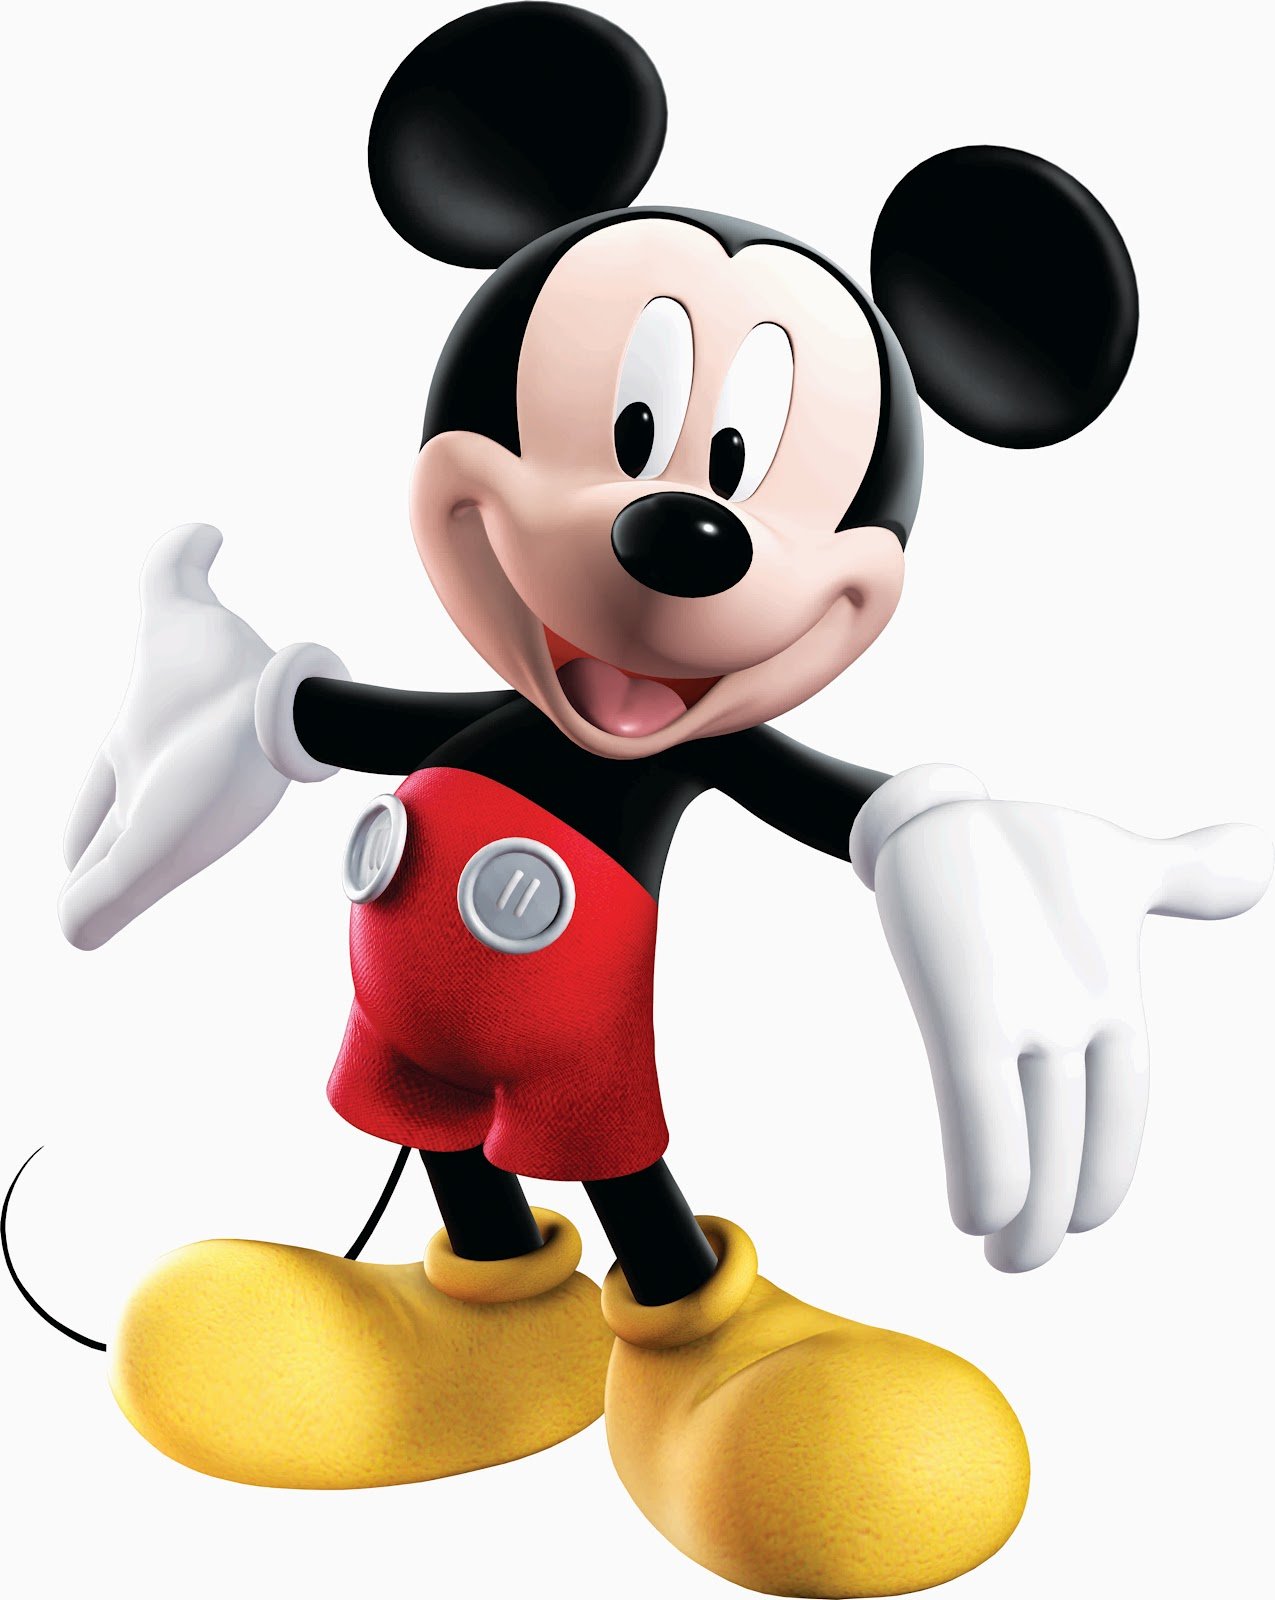 Mickey Mouse Wallpaper for FB Cover - Cartoons Wallpapers